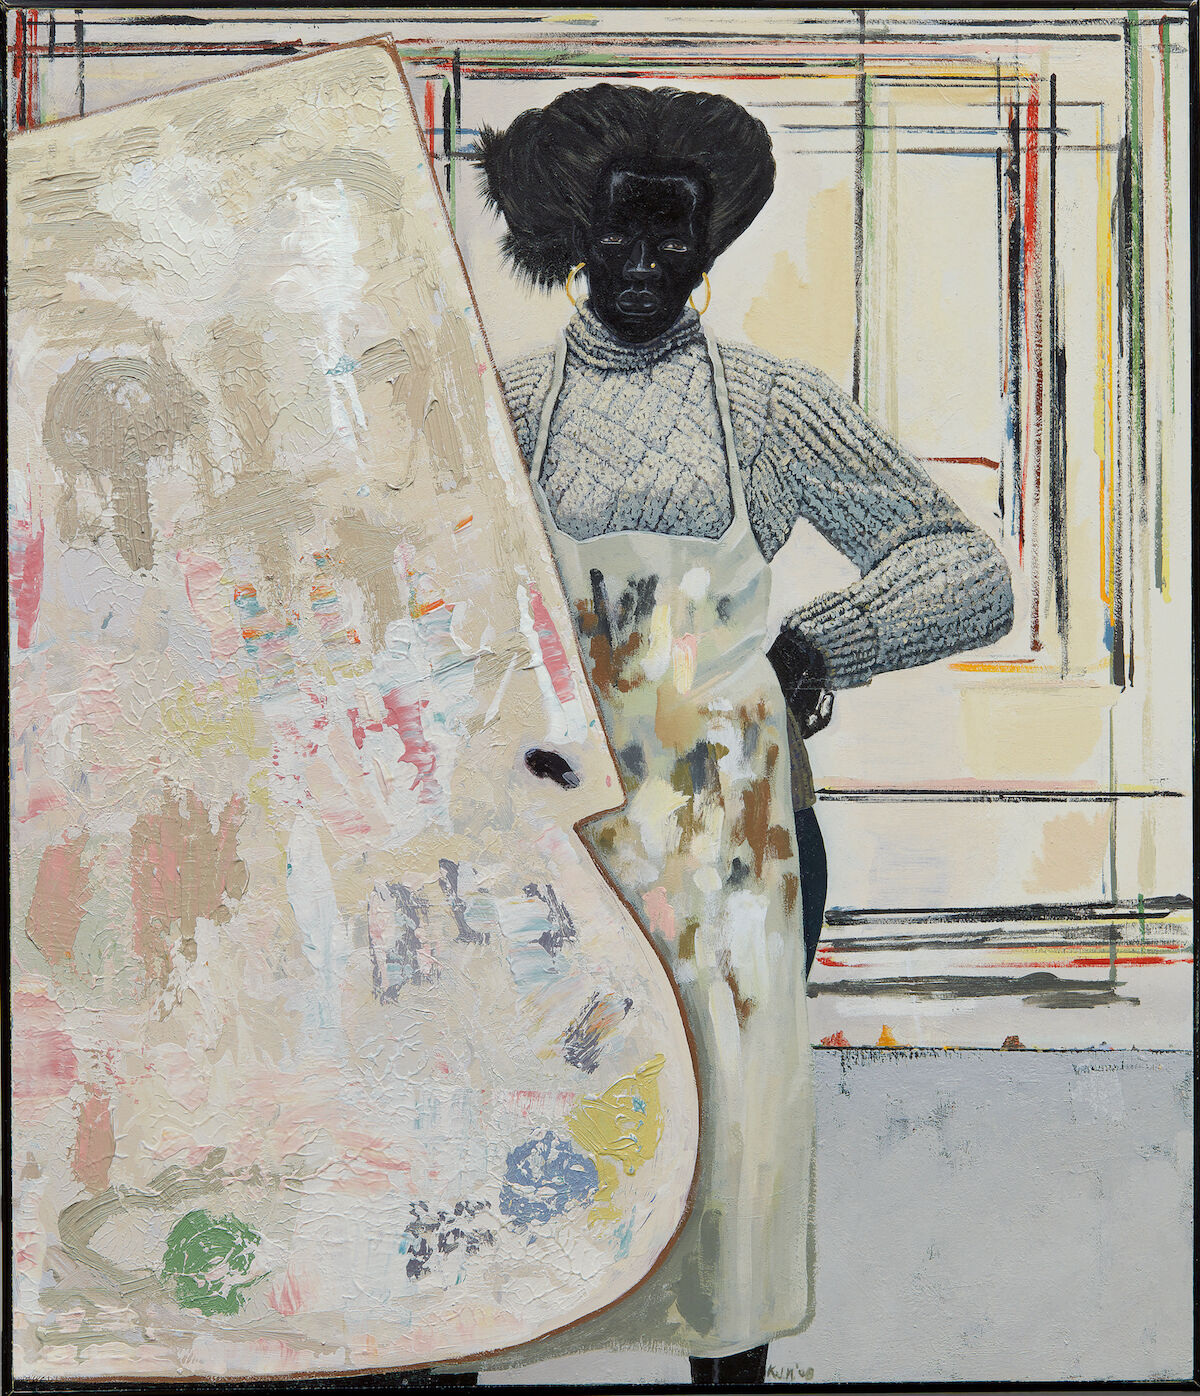 Kerry James Marshall, Untitled (Painter), 2008. Sold for $7,325,800. Courtesy Sotheby's.